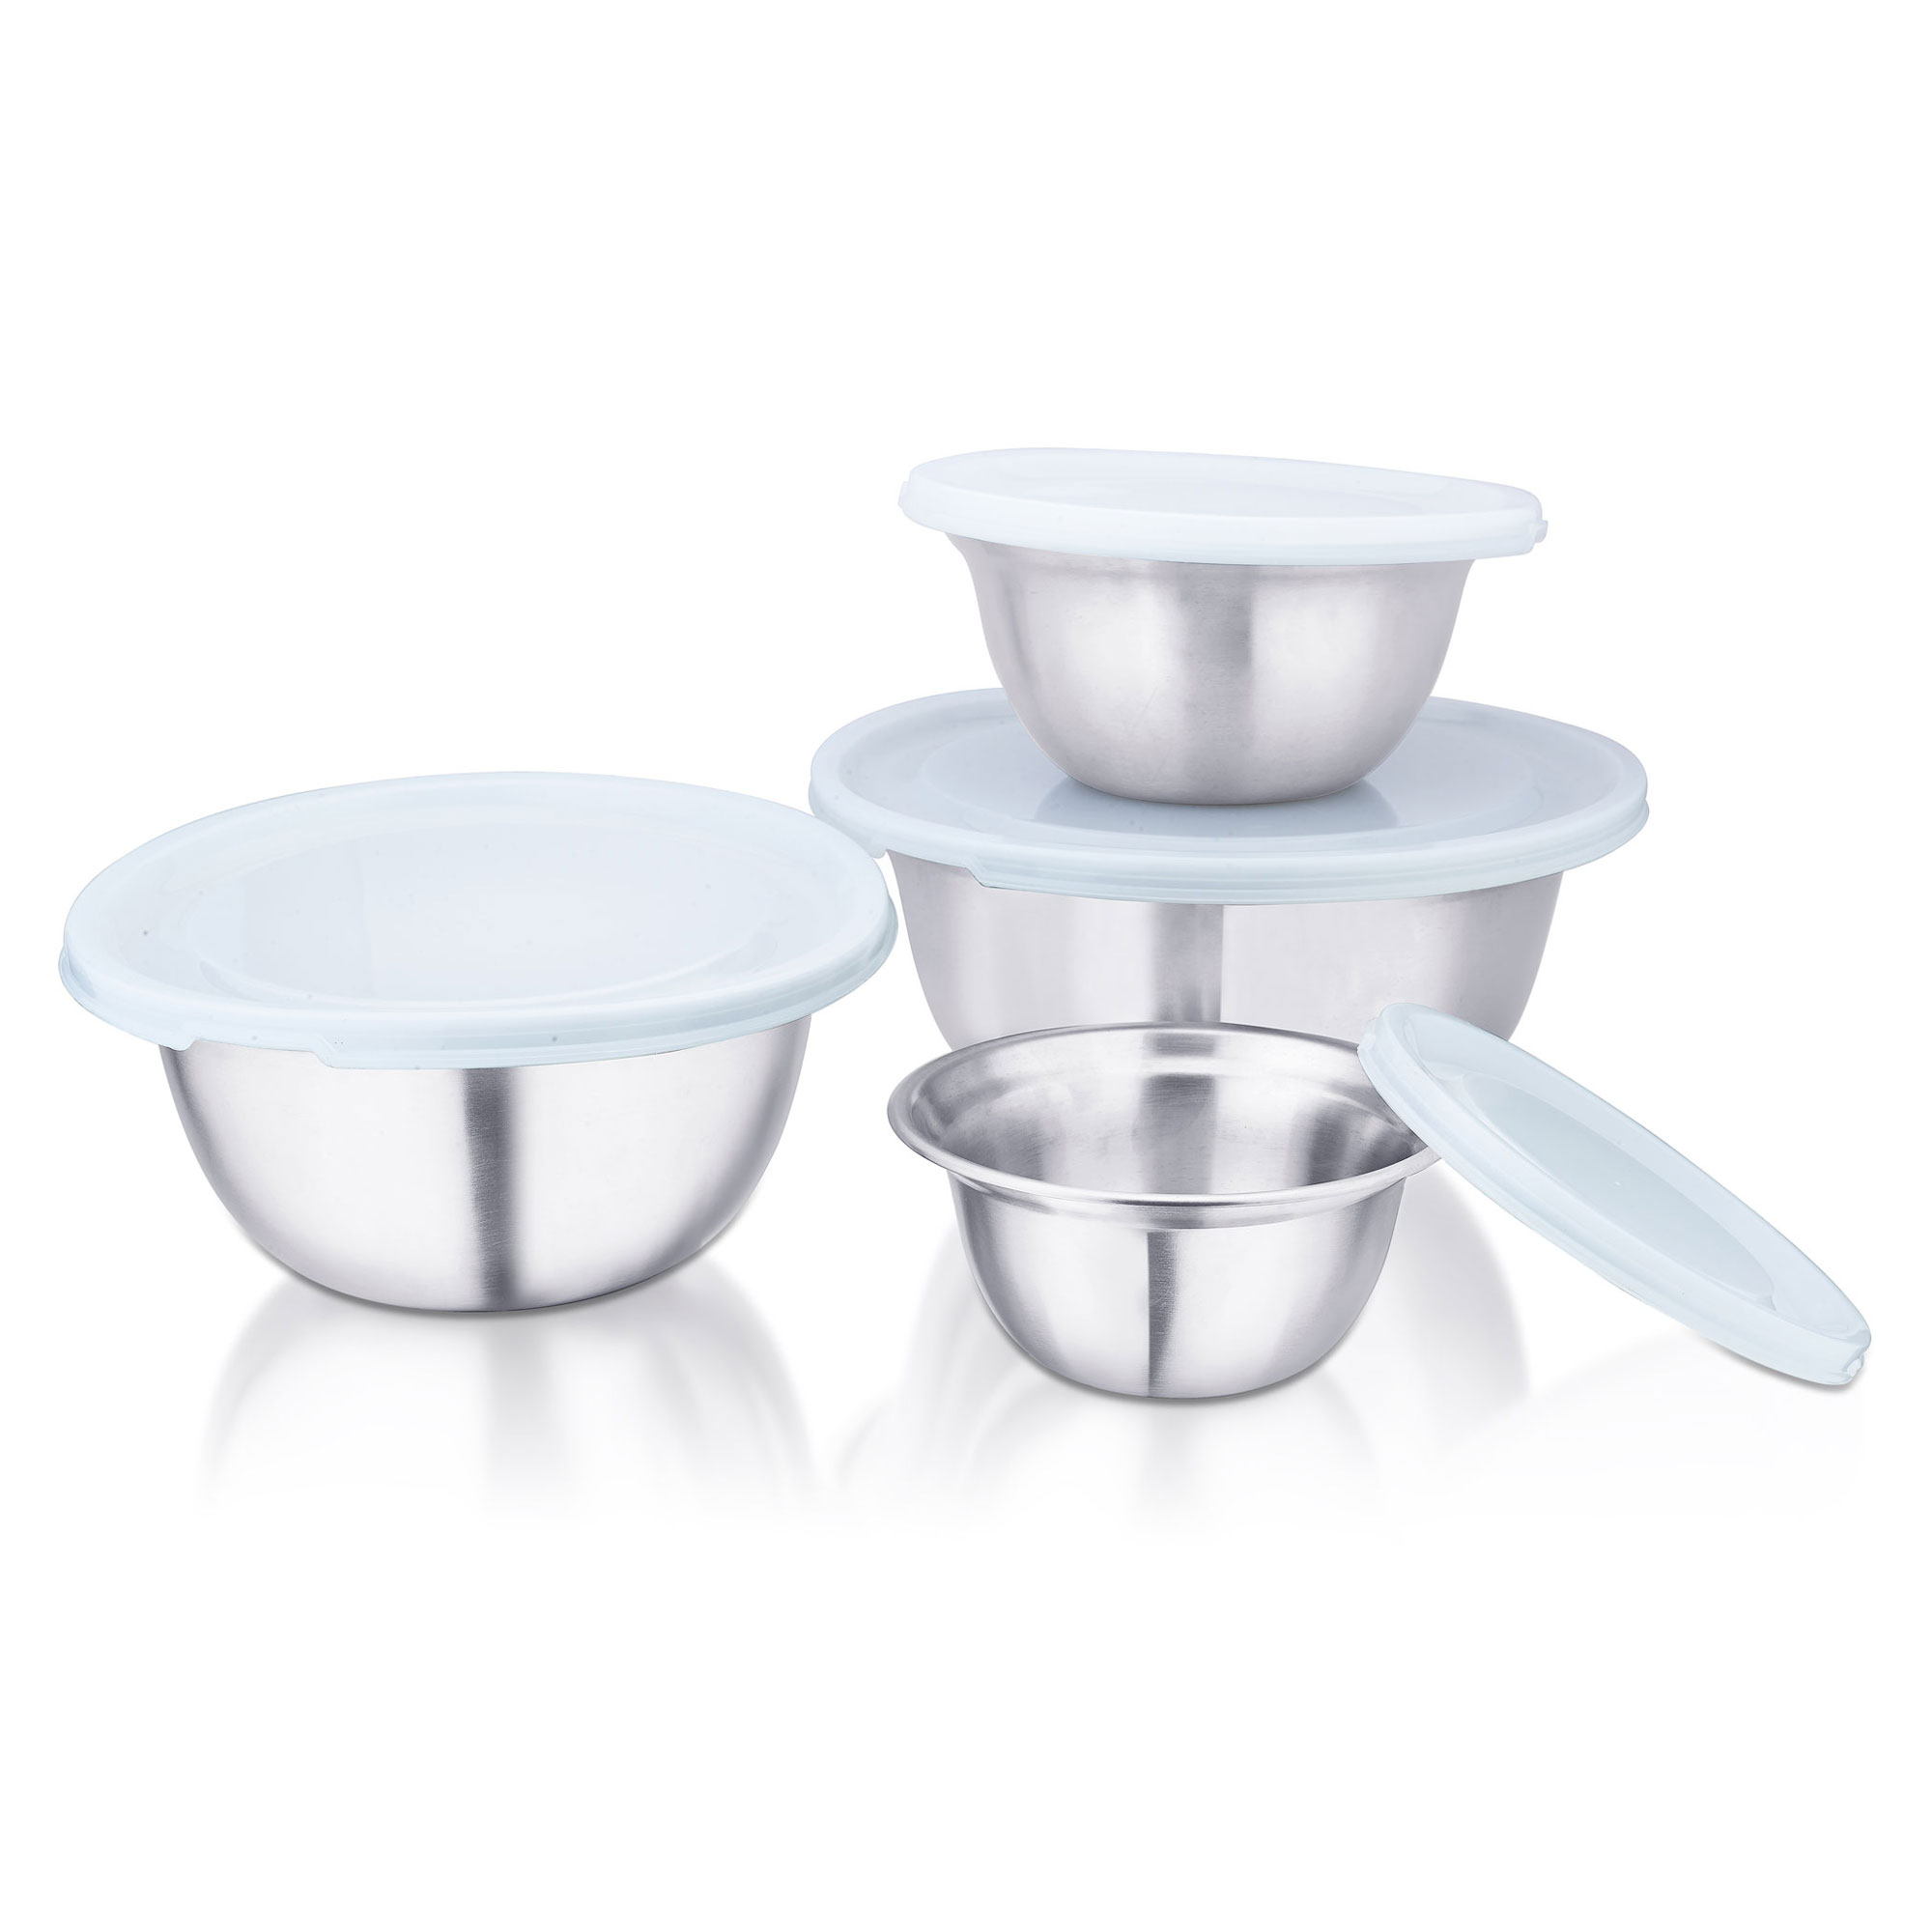 Manufacturers of SS mixing bowls - India, Kitchenware